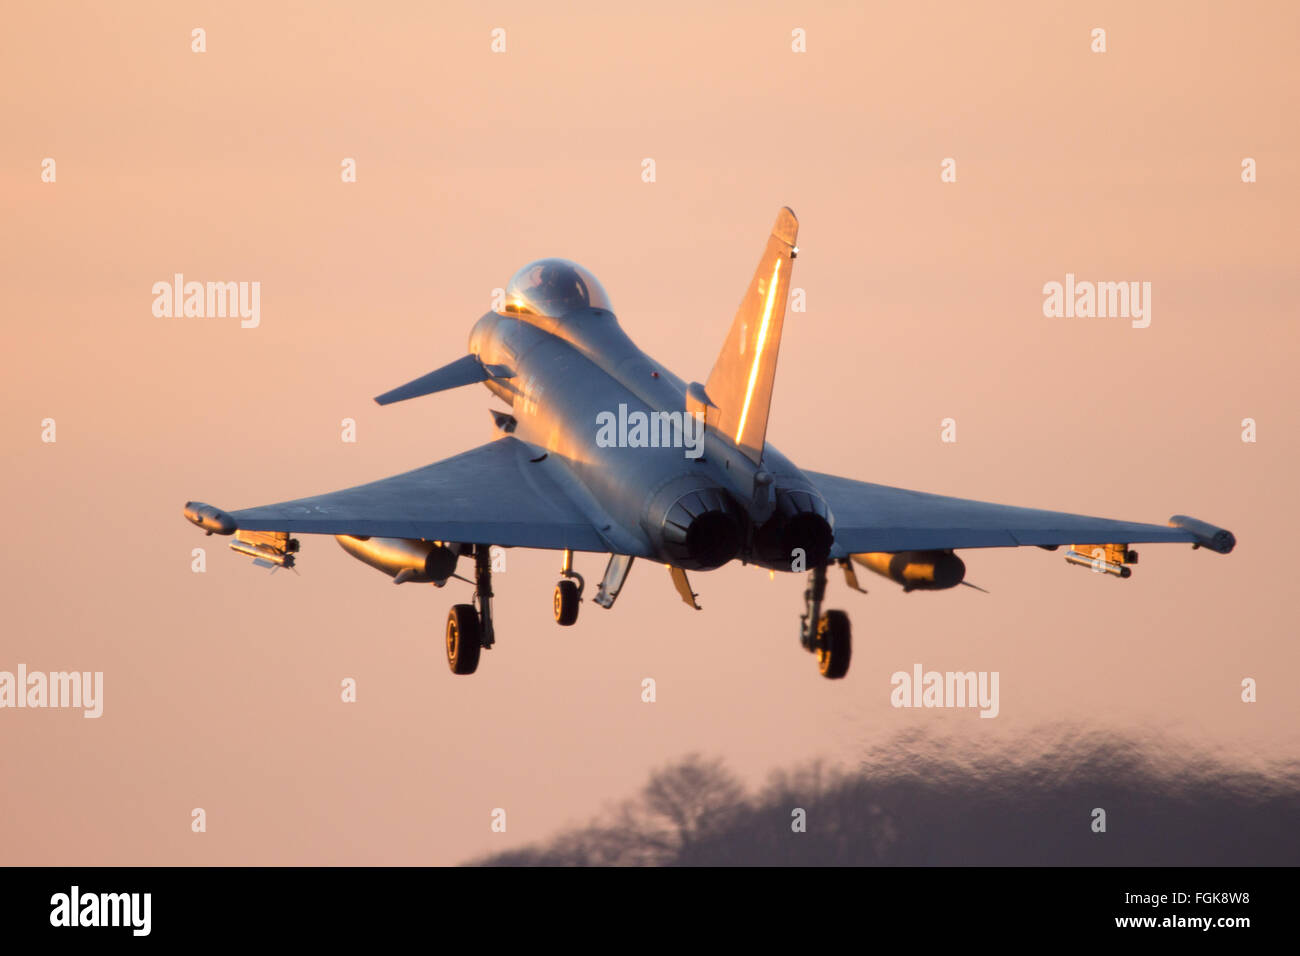 German Air Force Eurofighter Typhoon multirole fighter jet from Tactical Wing 31 landing on it - Stock Image